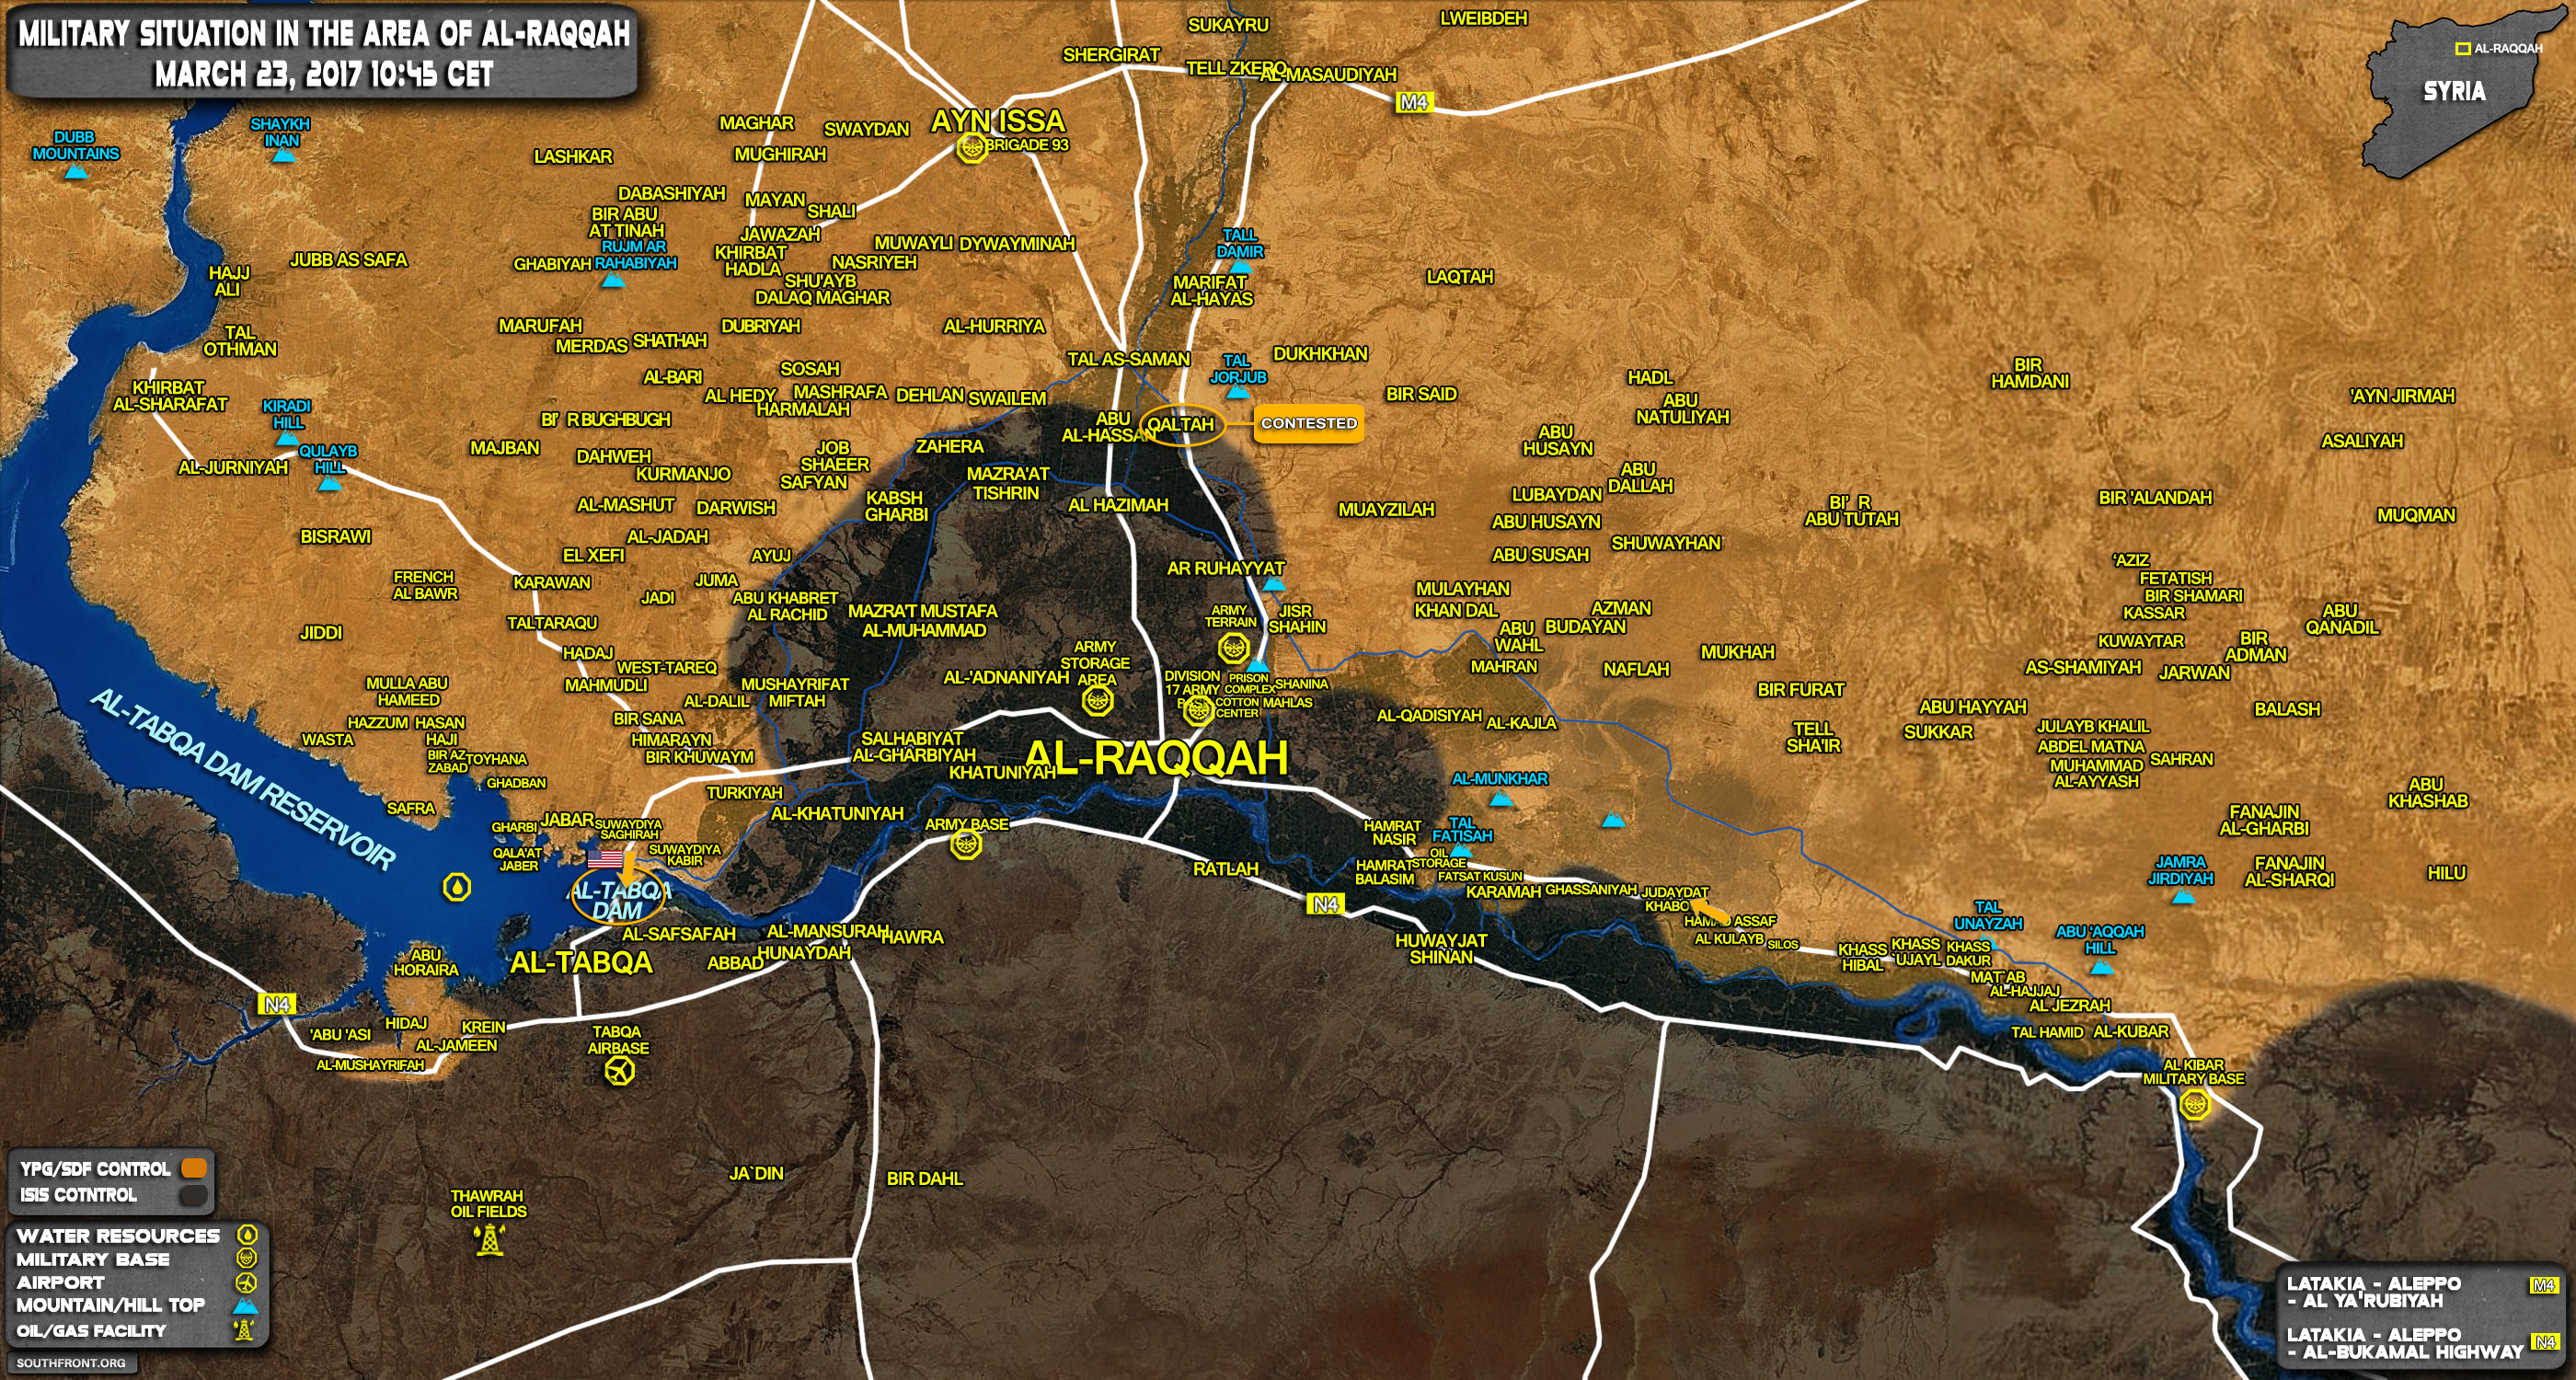 US Special Forces, SDF Fighters Capture Tabqa Dam In Raqqah Province - UNCONFIRMED